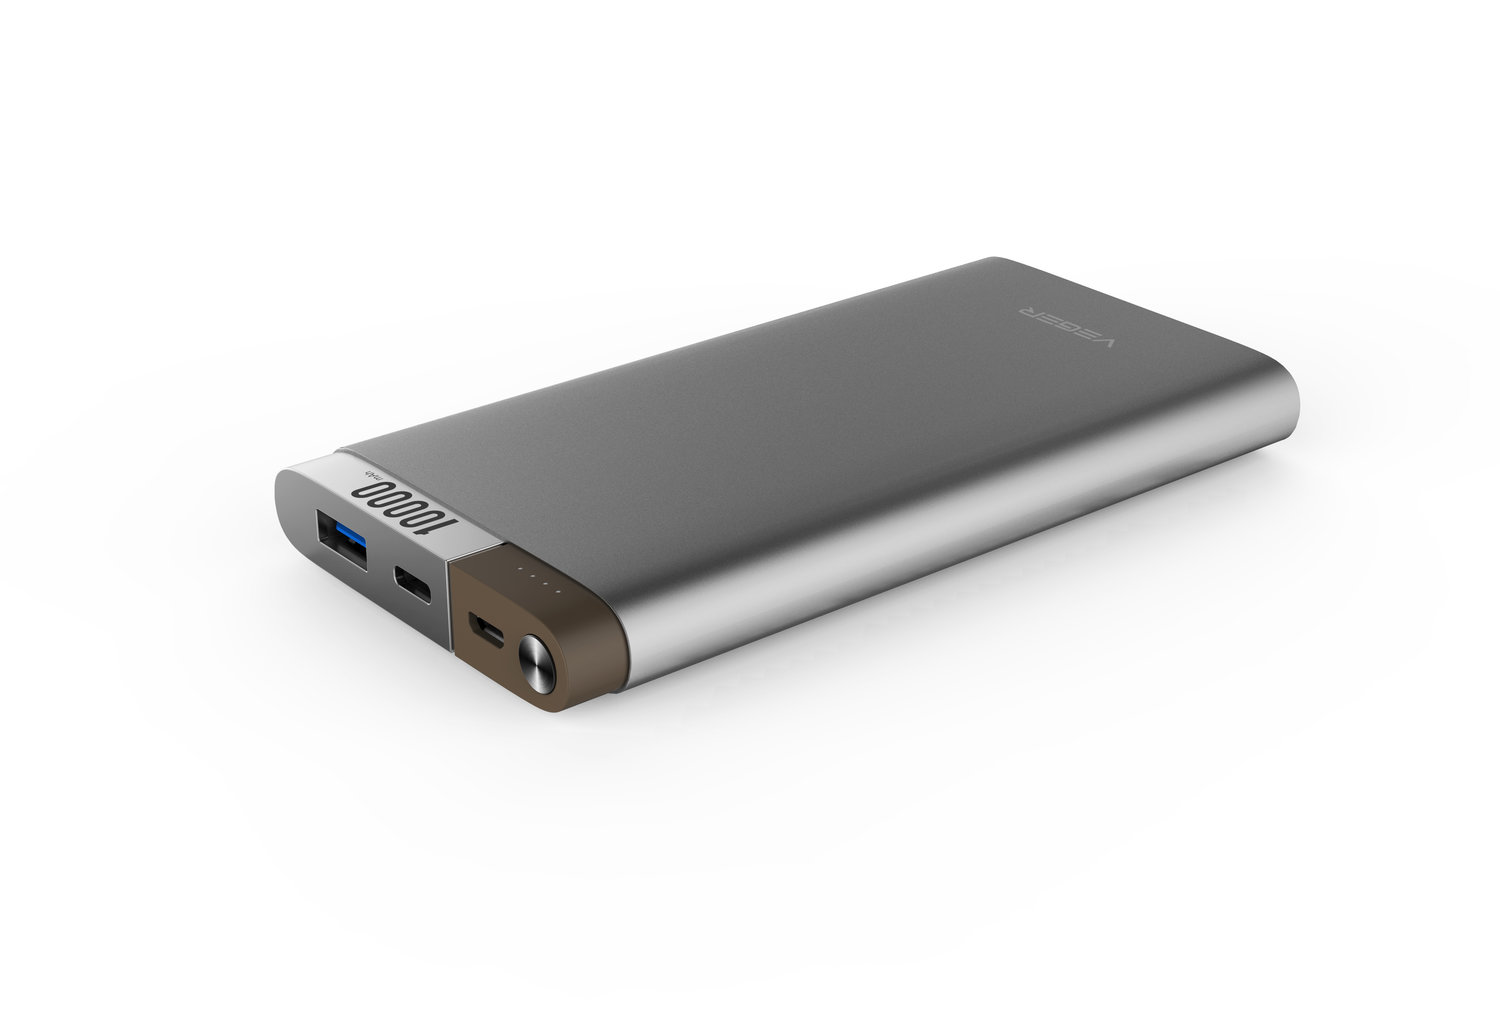 BLUPEAK Blueak 10,000mAh Premium Aluminium Power Bank USB-A & USB-C